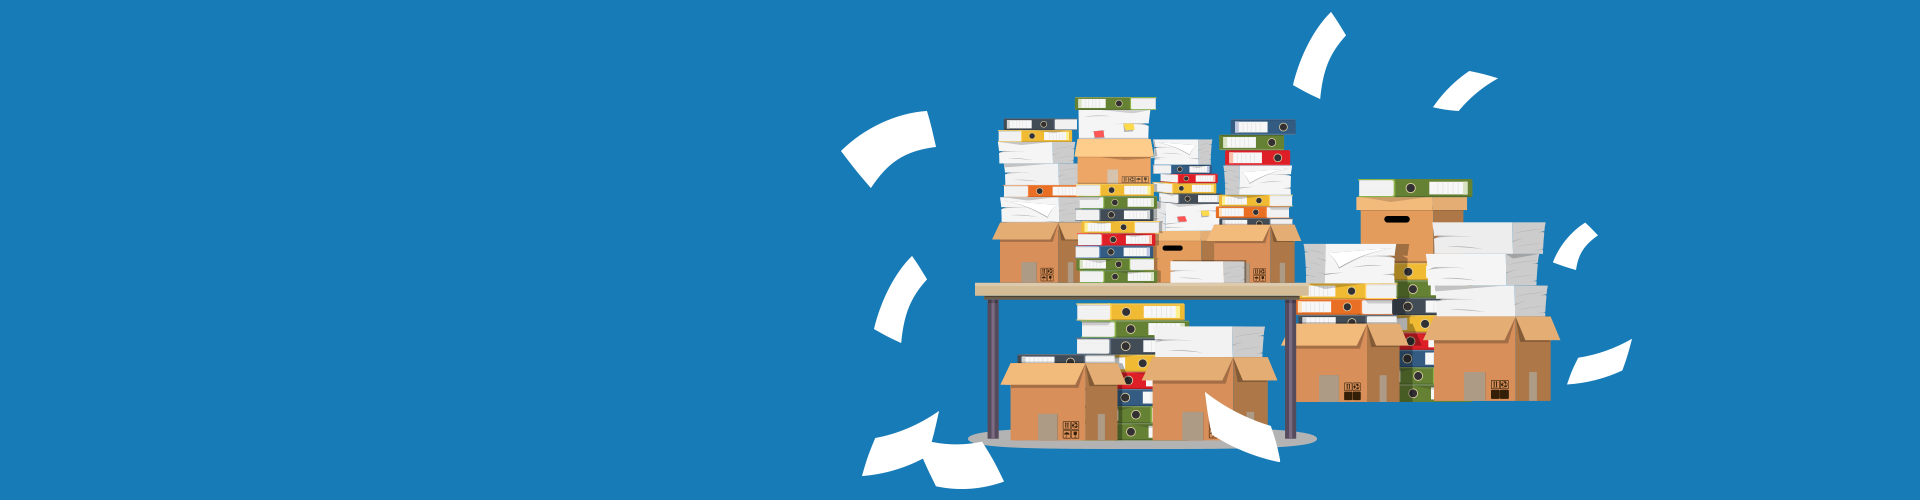 How to Go Paperless: Your Guide to Going Paperless | HelpSystems